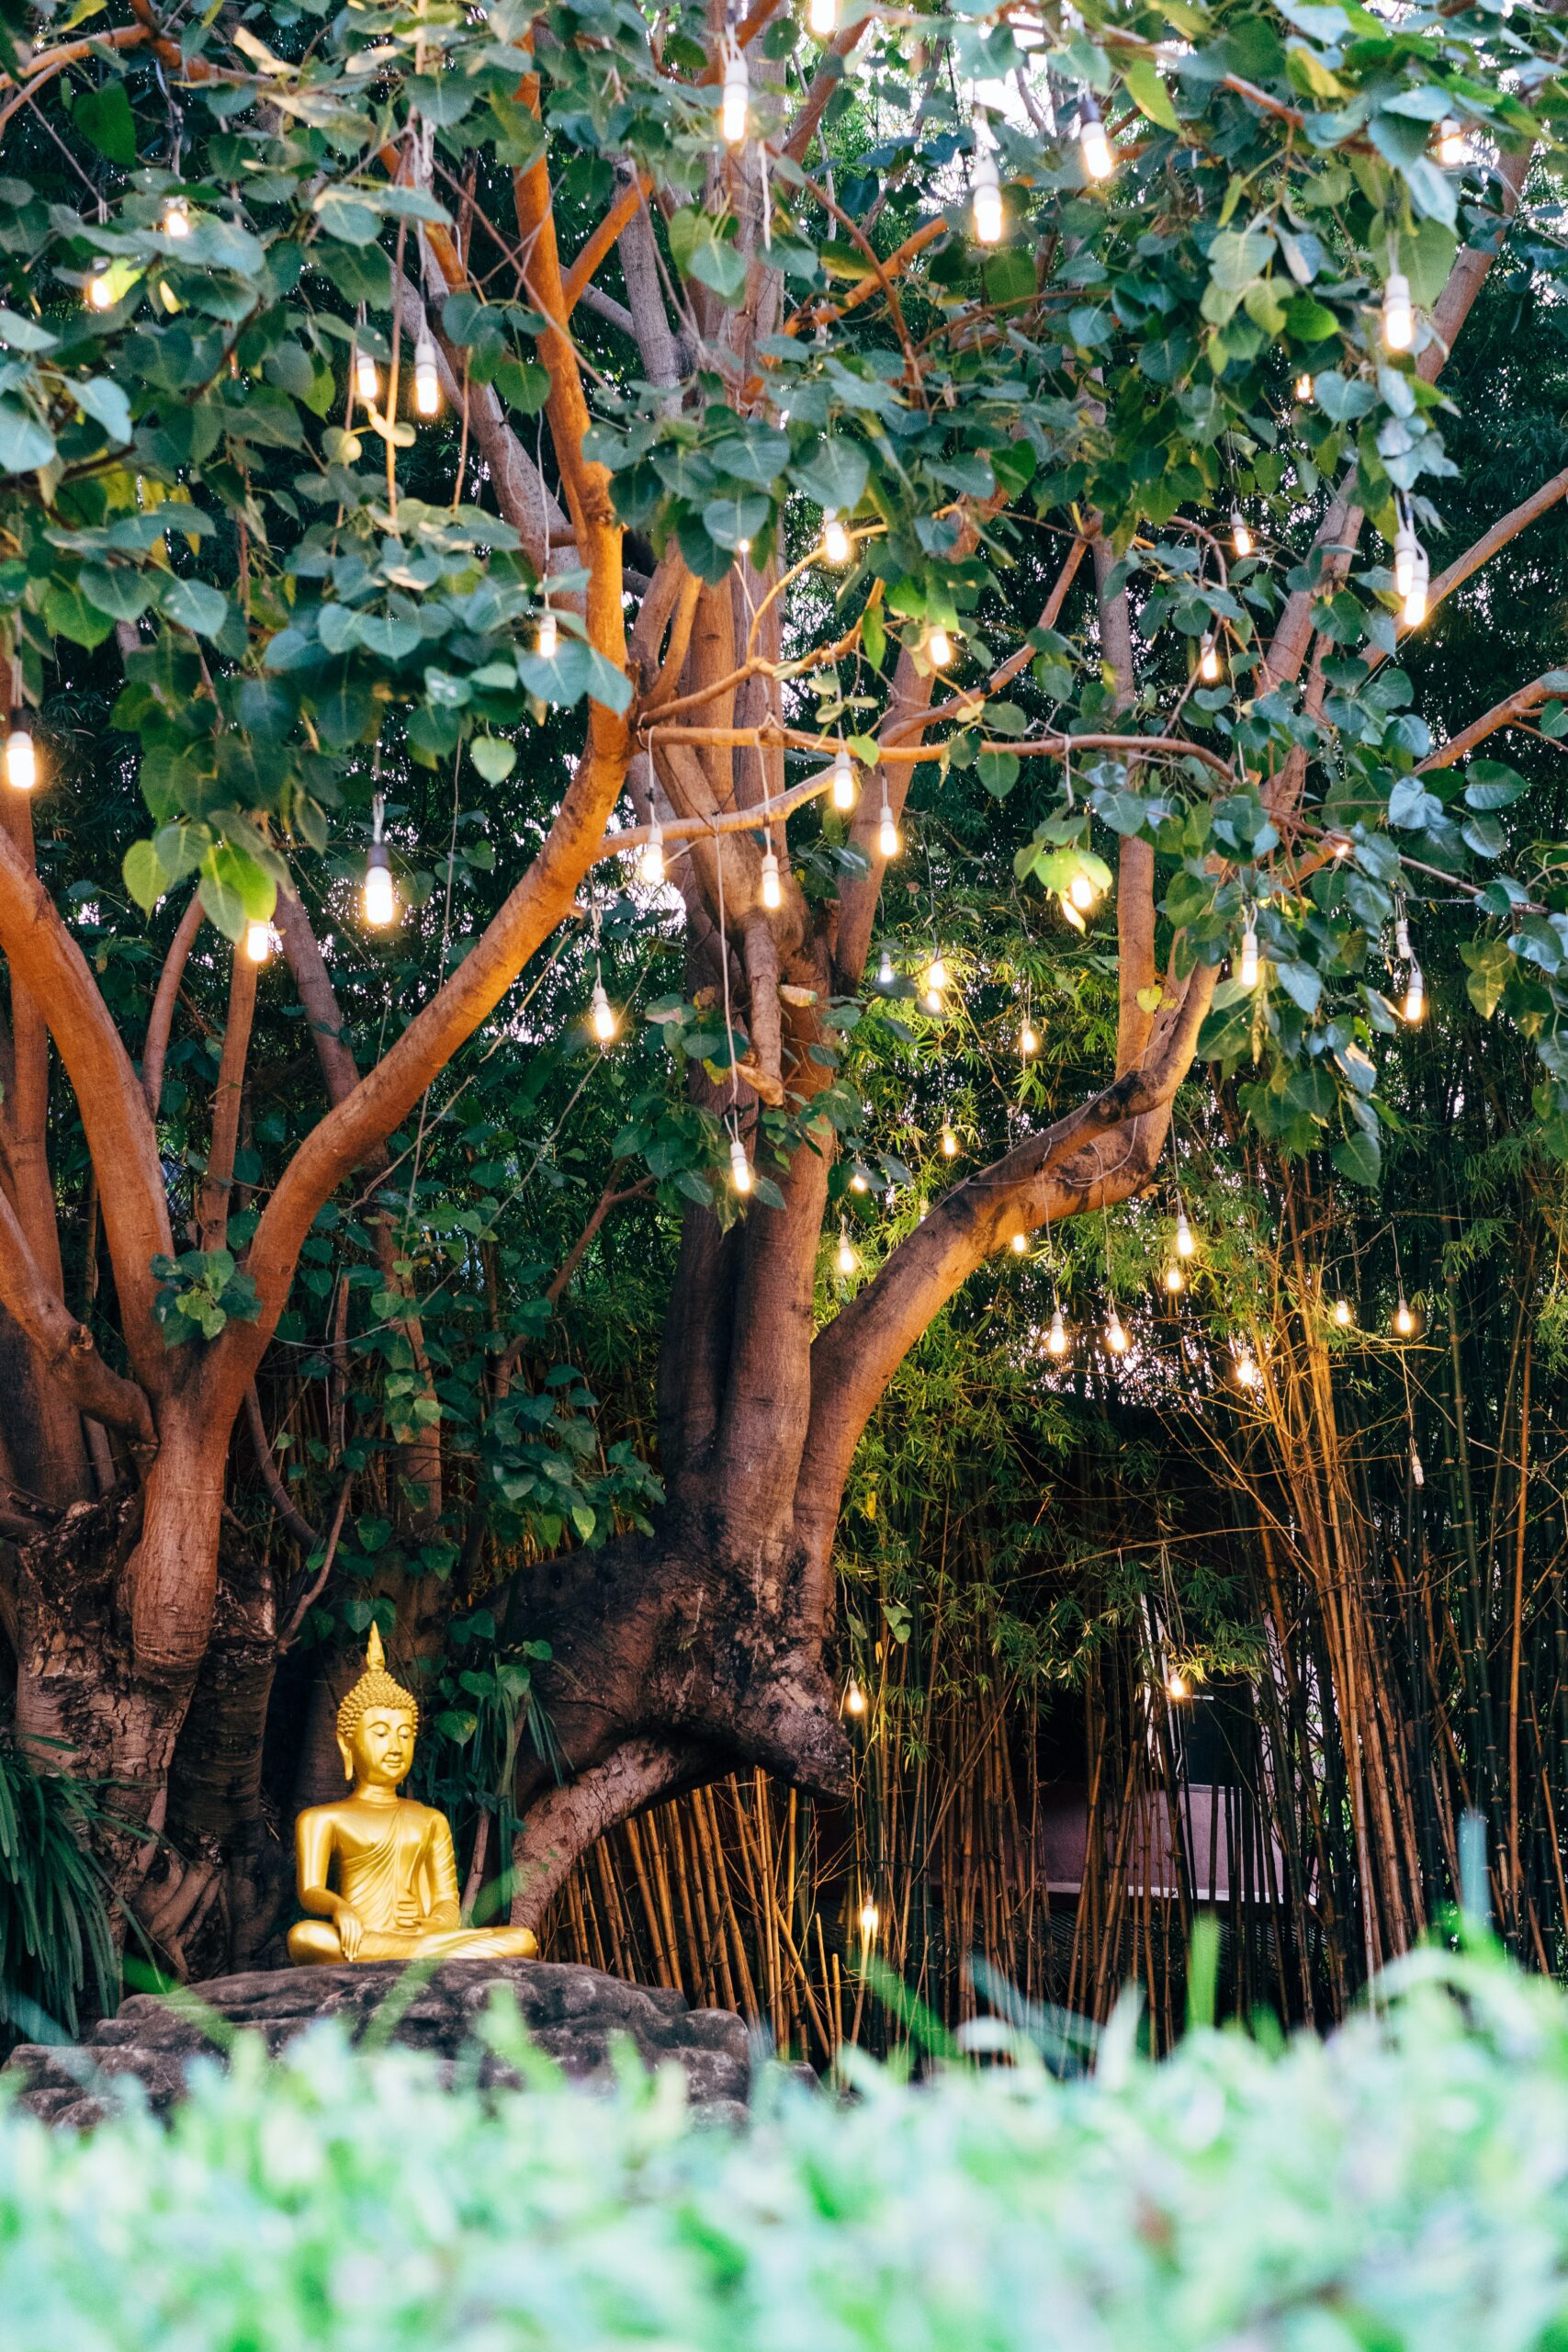 Buddha in Garden with Bamboo by Markus Winkler